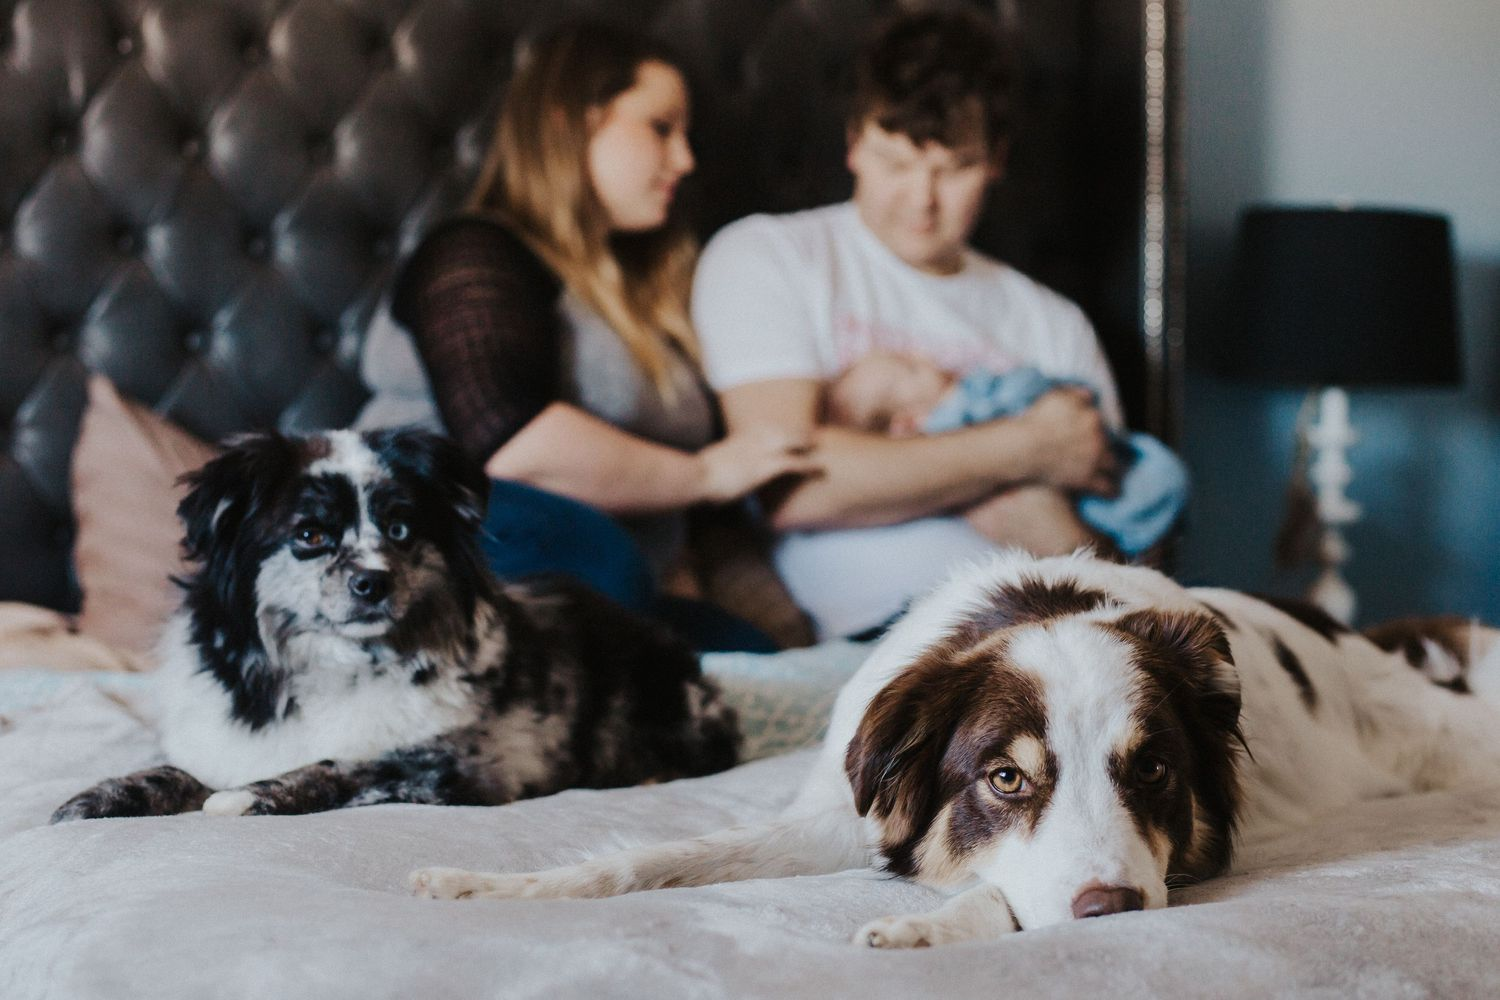 parents sit on bed looking at baby with dogs in front